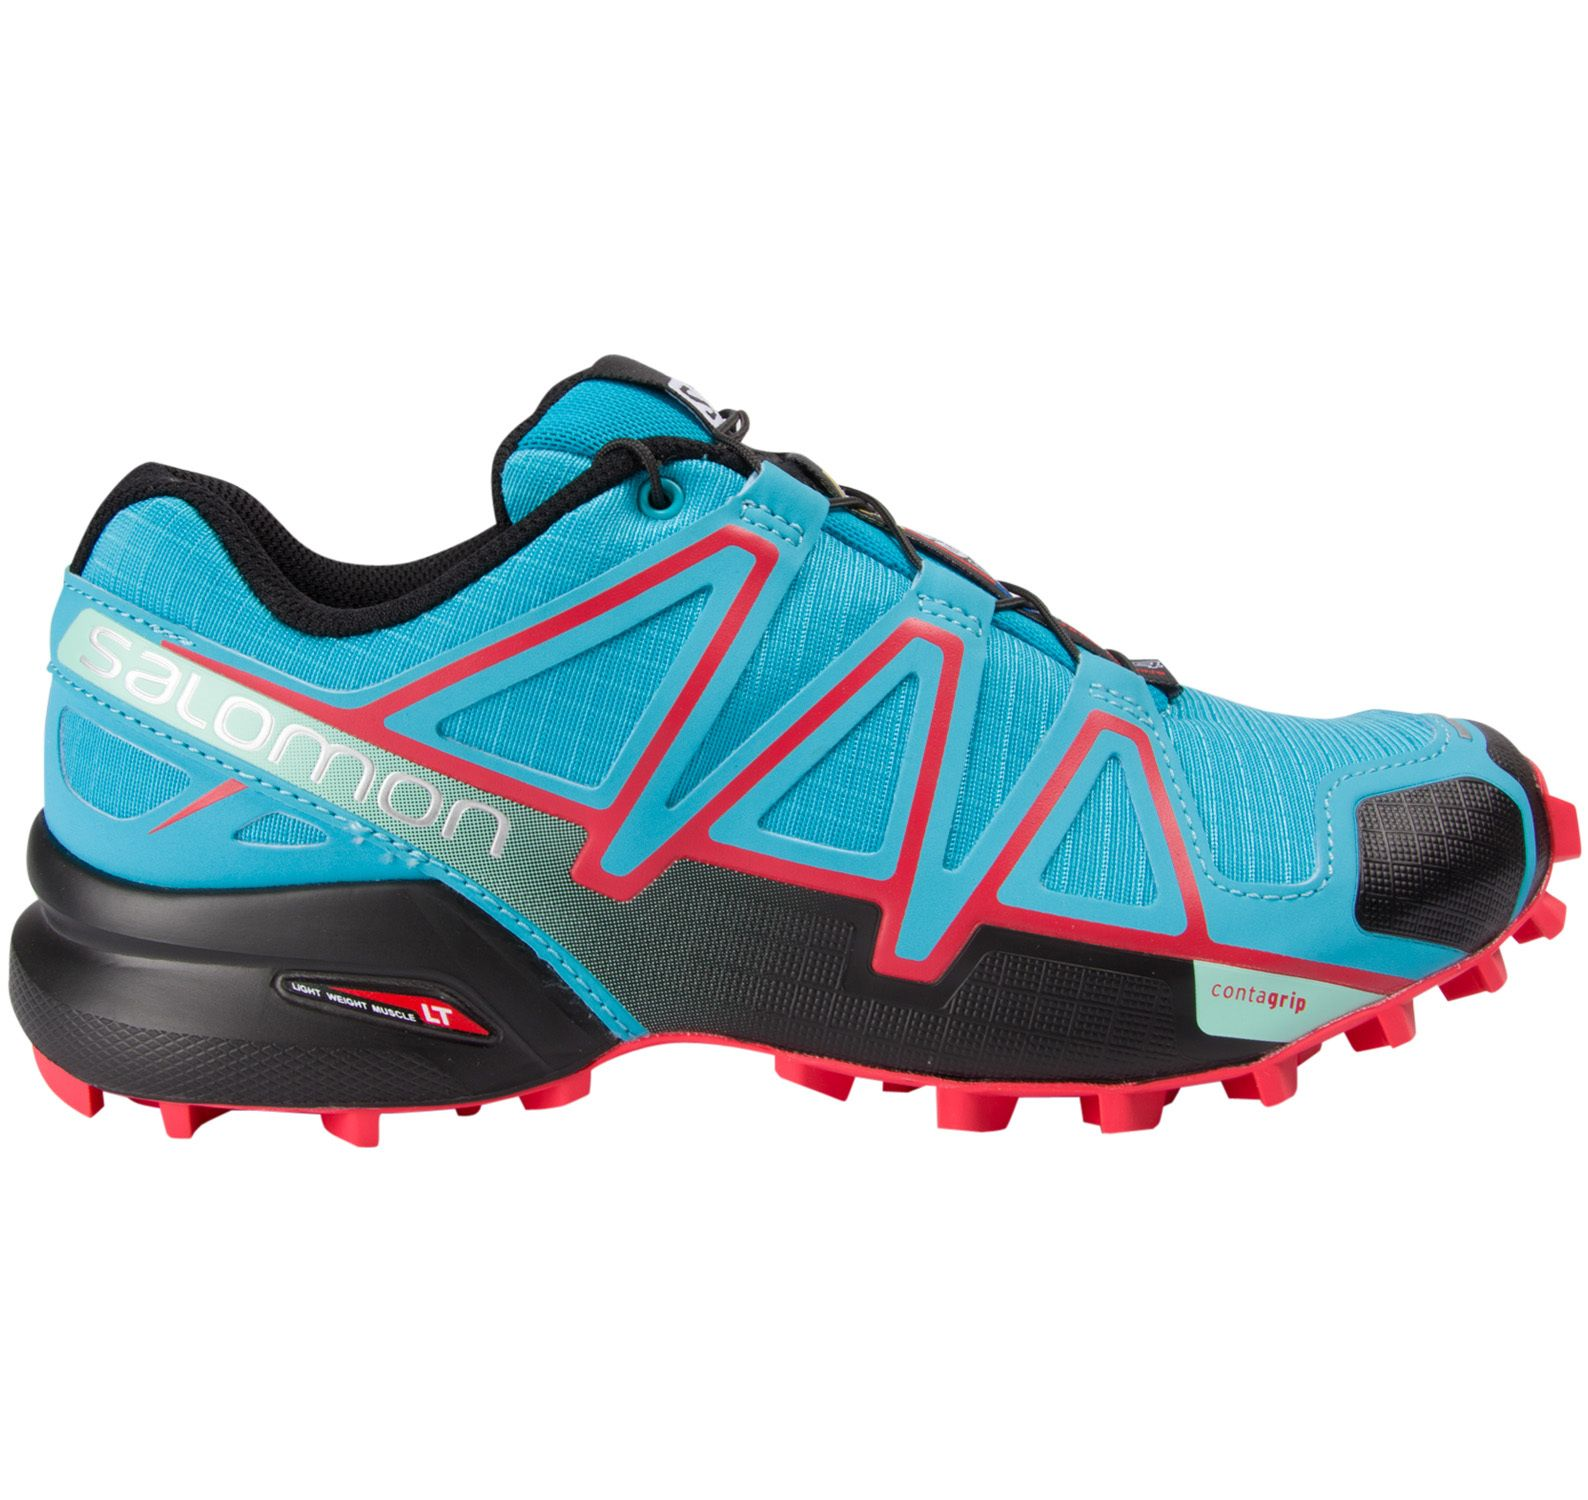 speedcross 4 w, blue jay/ black/ infrared, 37 1/3